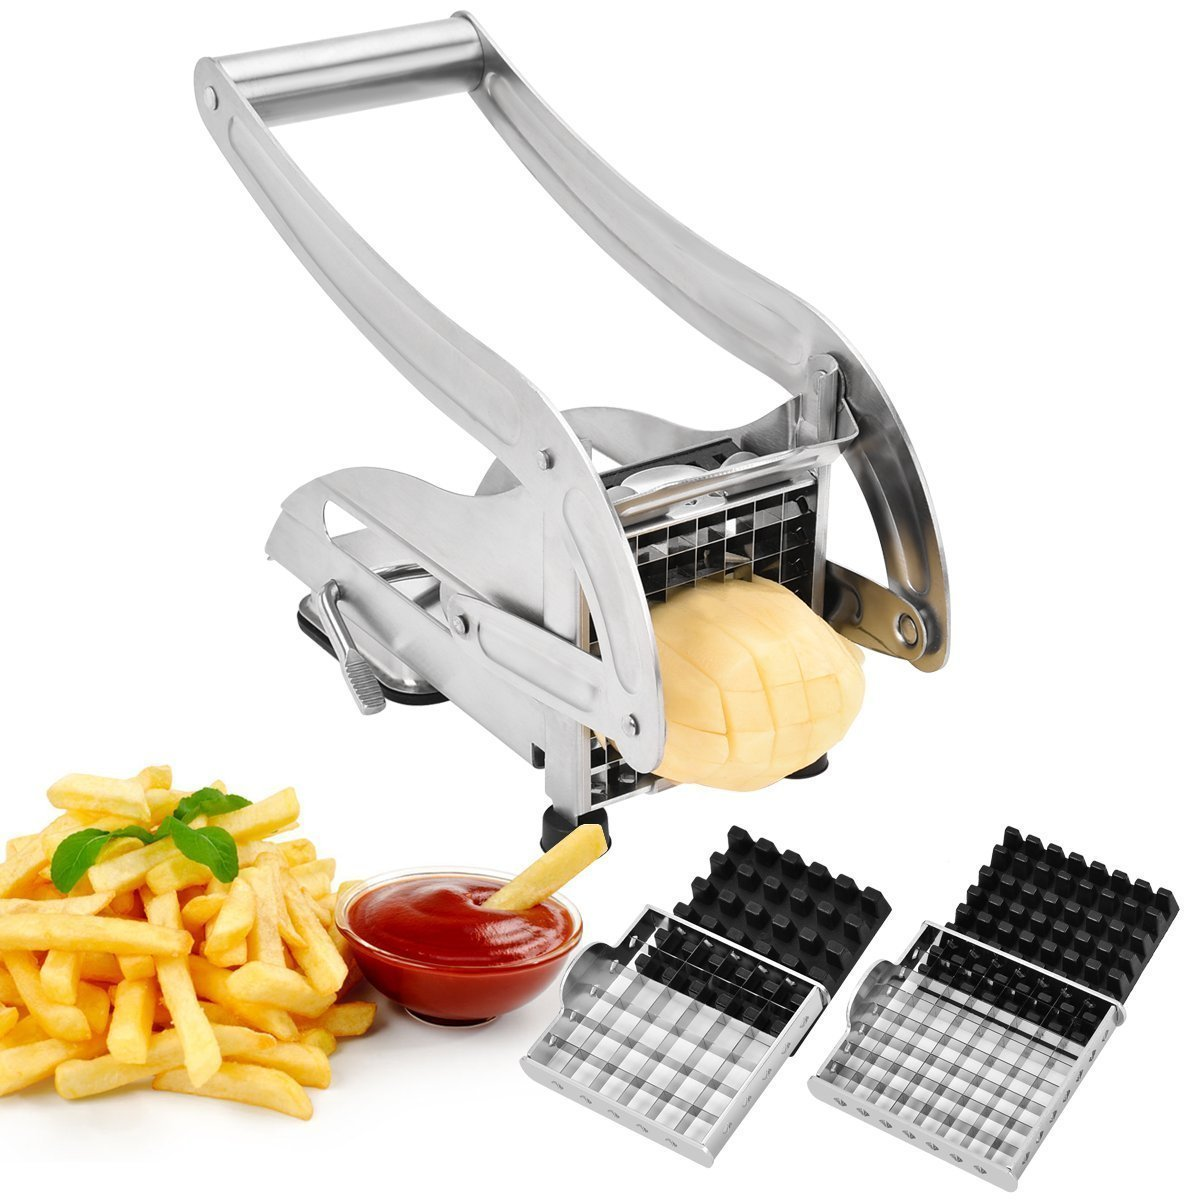 French Fries Cutter, Sopito Potato Chipper Cutter Homemade Stainless Steel with 2 Size Blades for Vegetables Like Cucumber, Carrot and More by Sopito